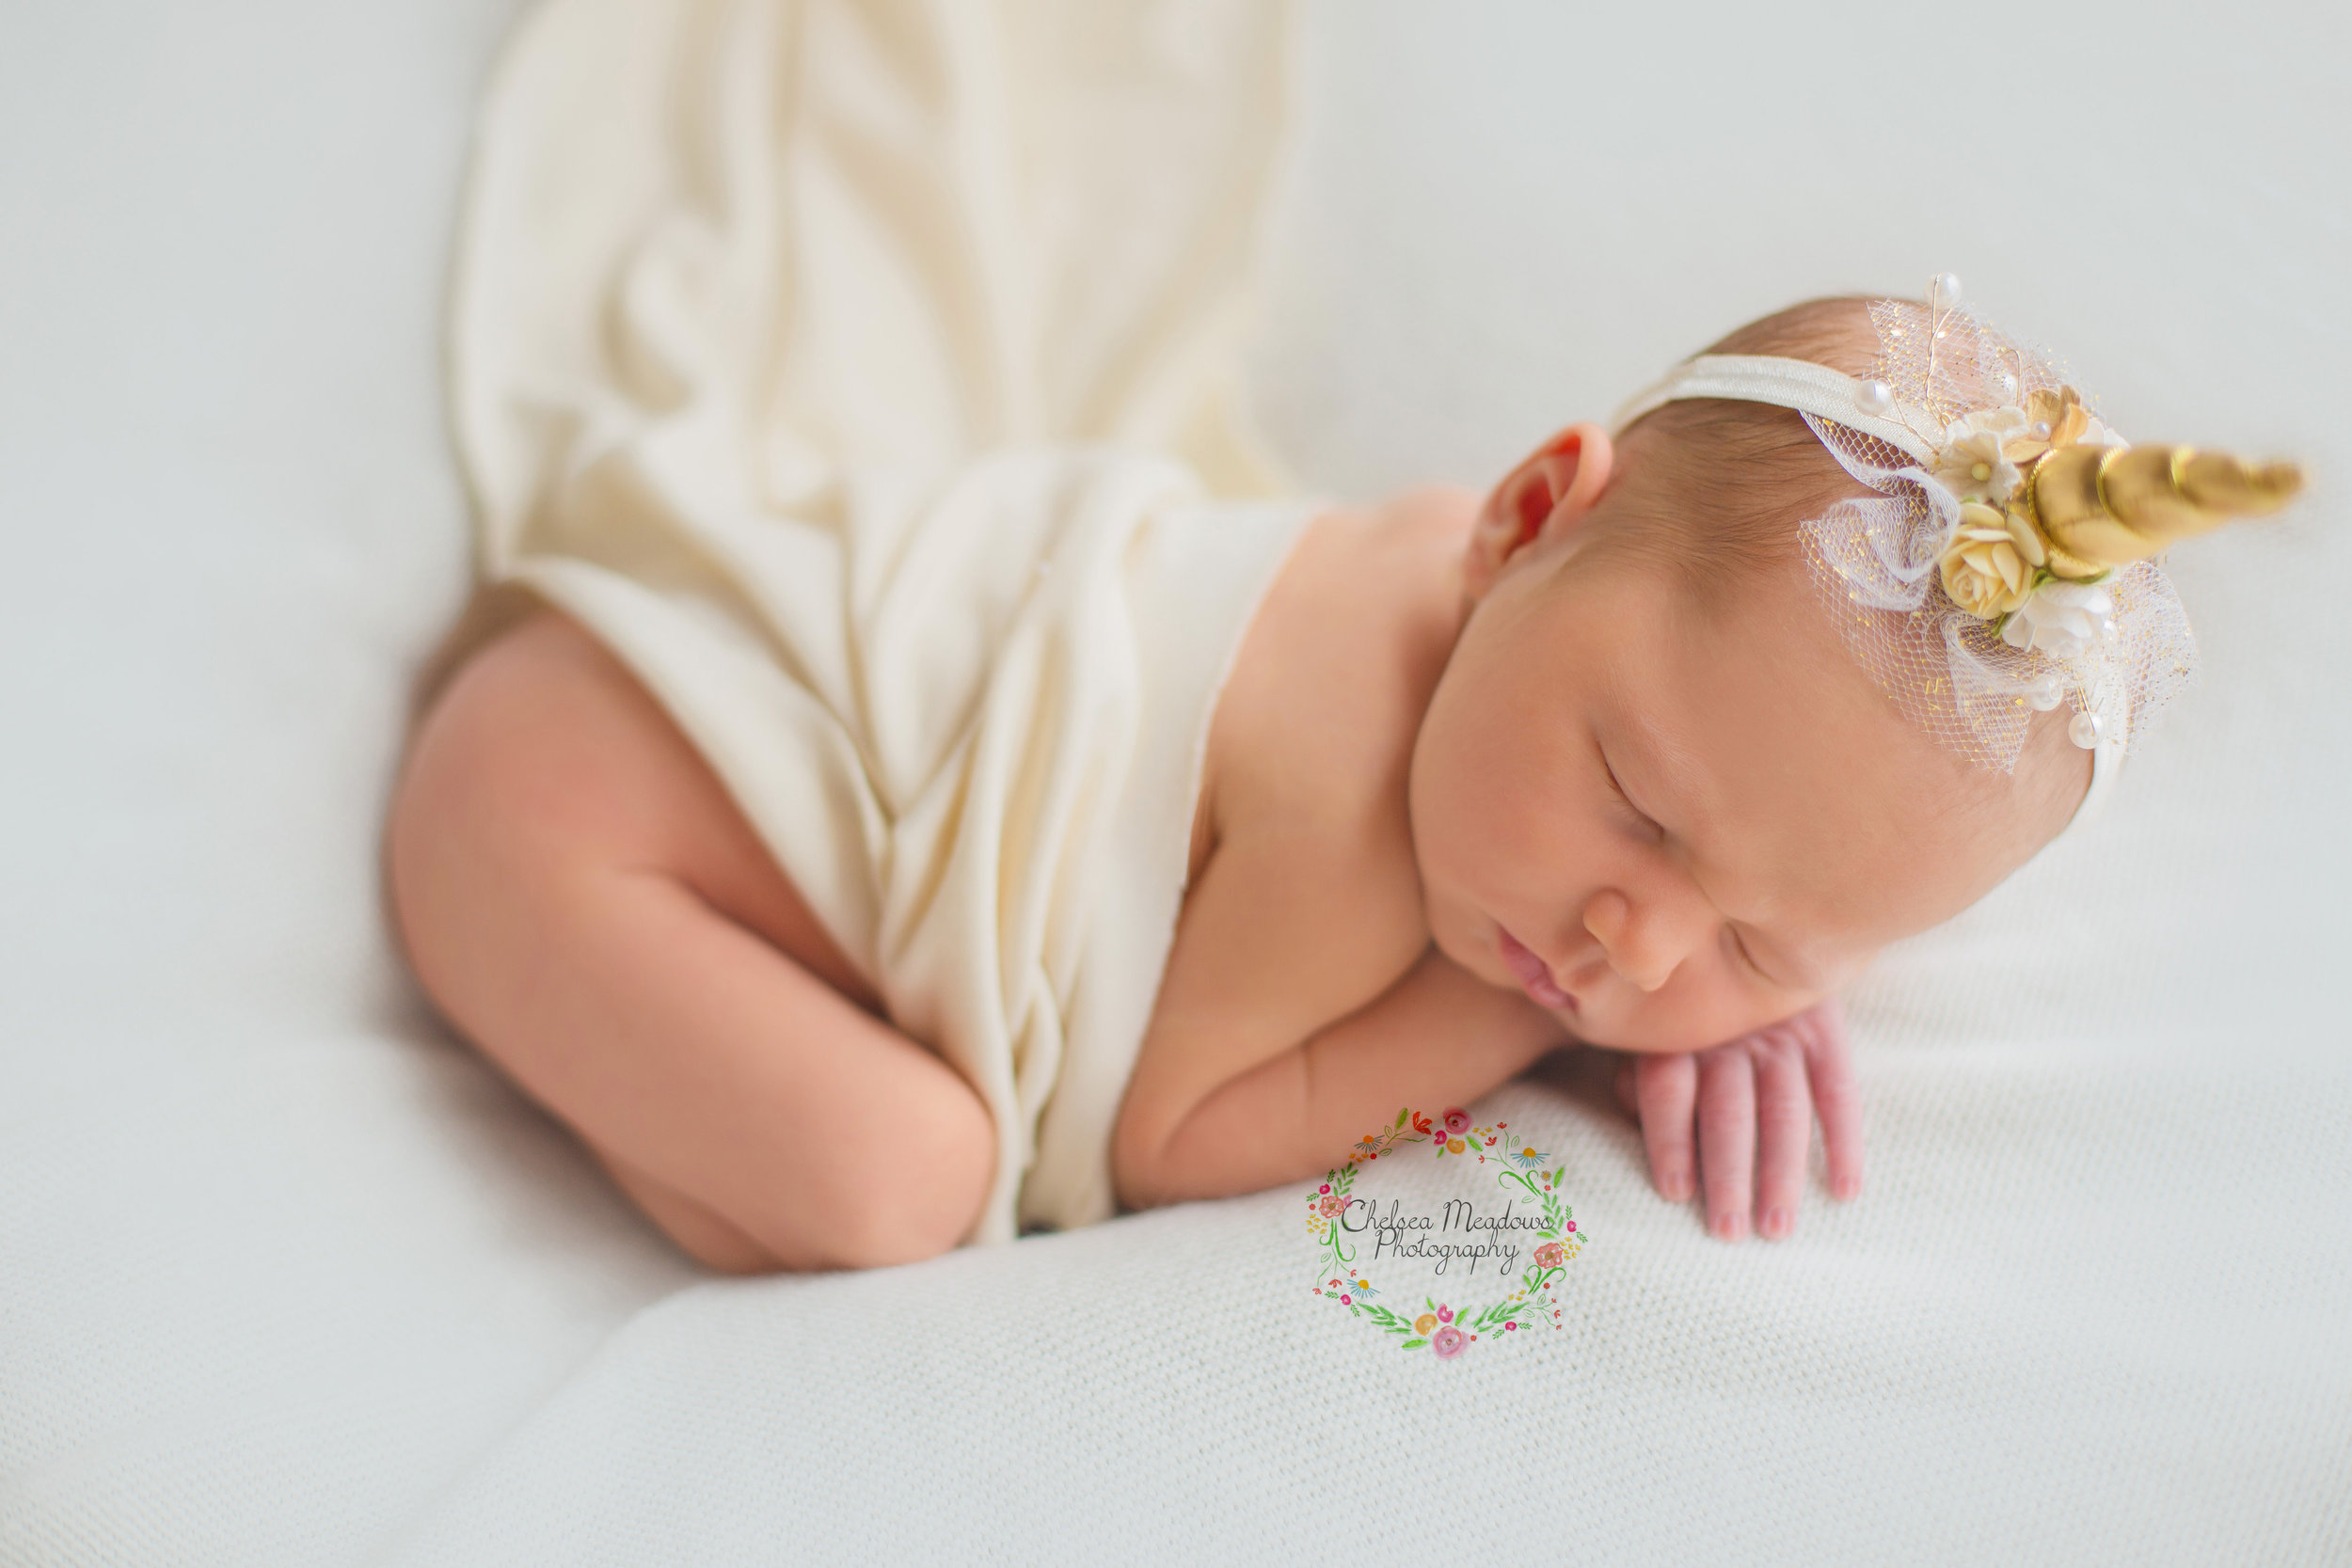 Sawyer Newborn Session - Nashville Newborn Photographer - Chelsea Meadows Photography (21).jpg